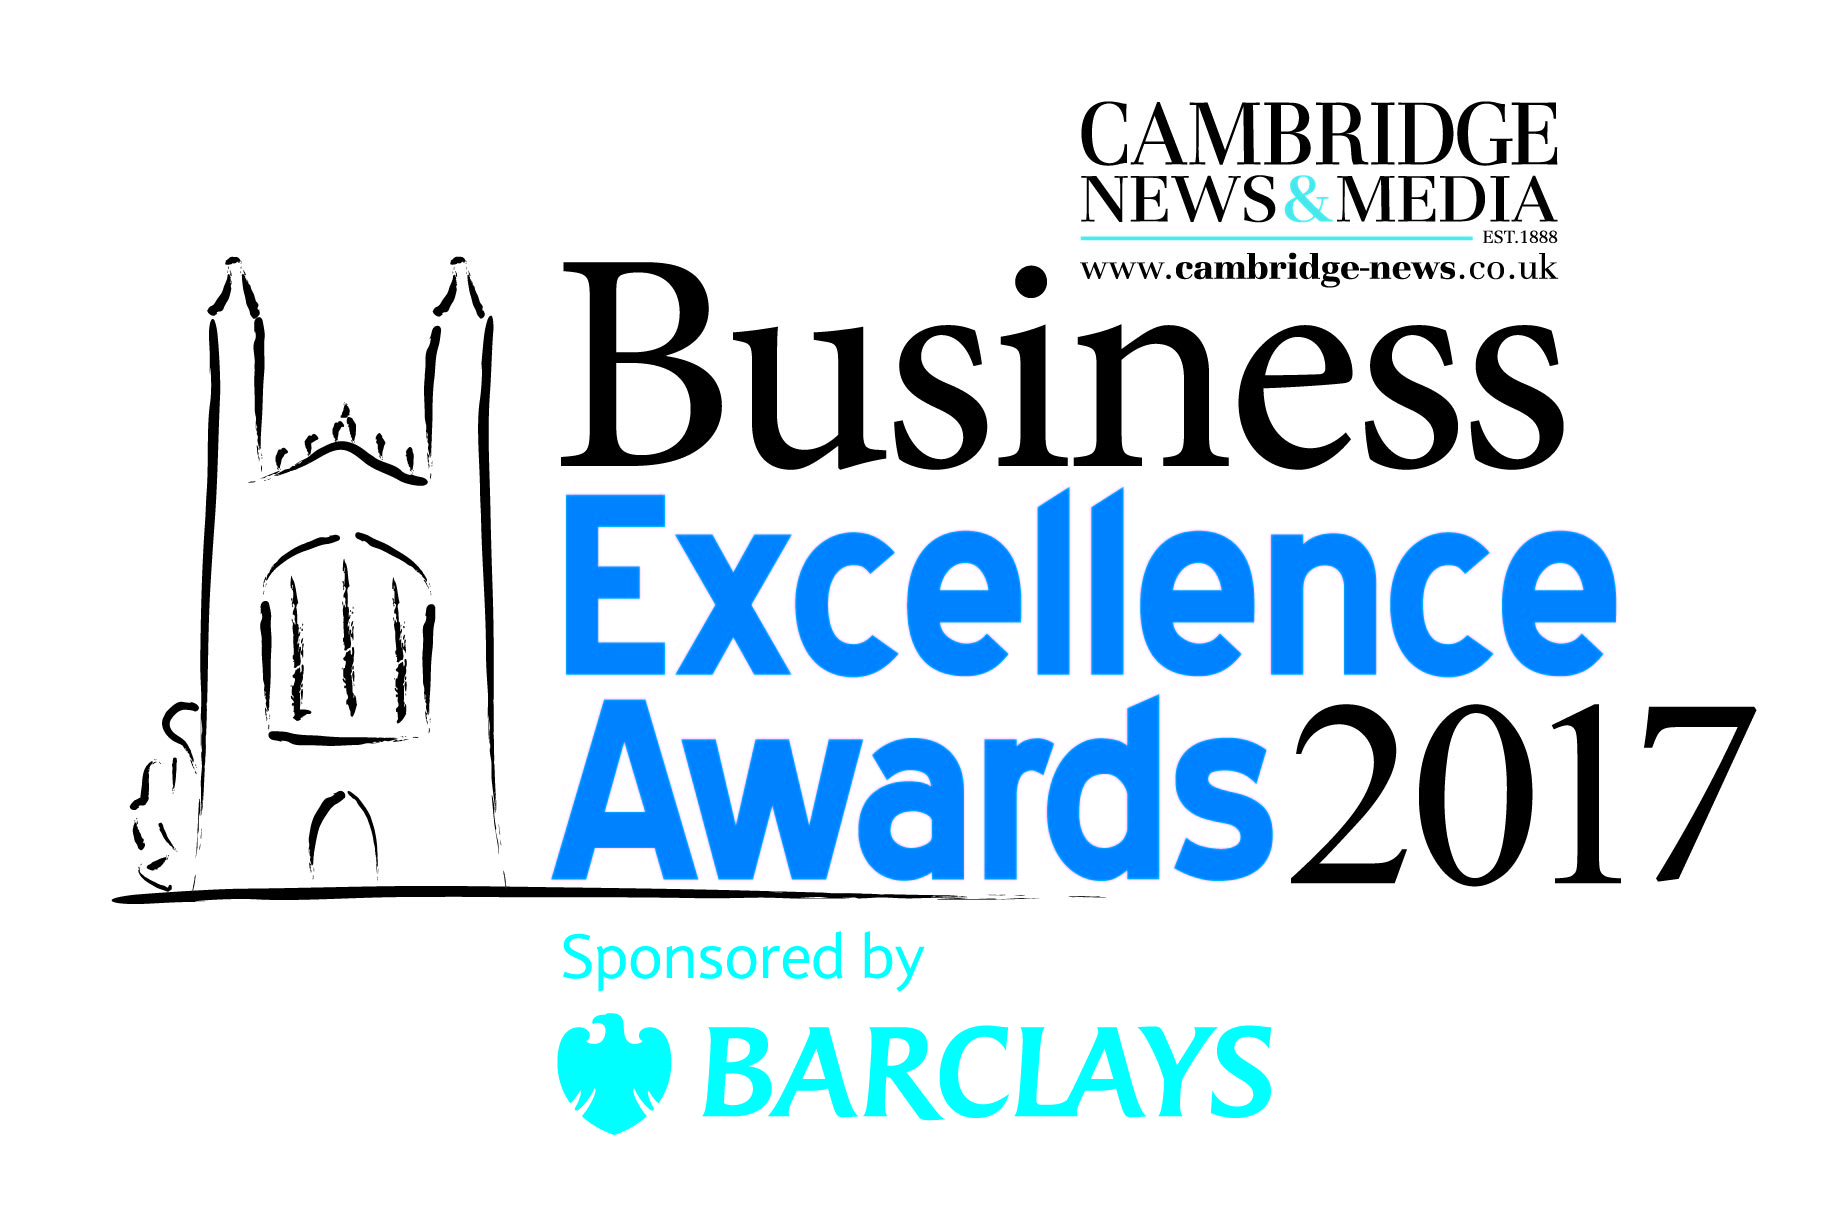 Business Excellence Awards 2017 logo